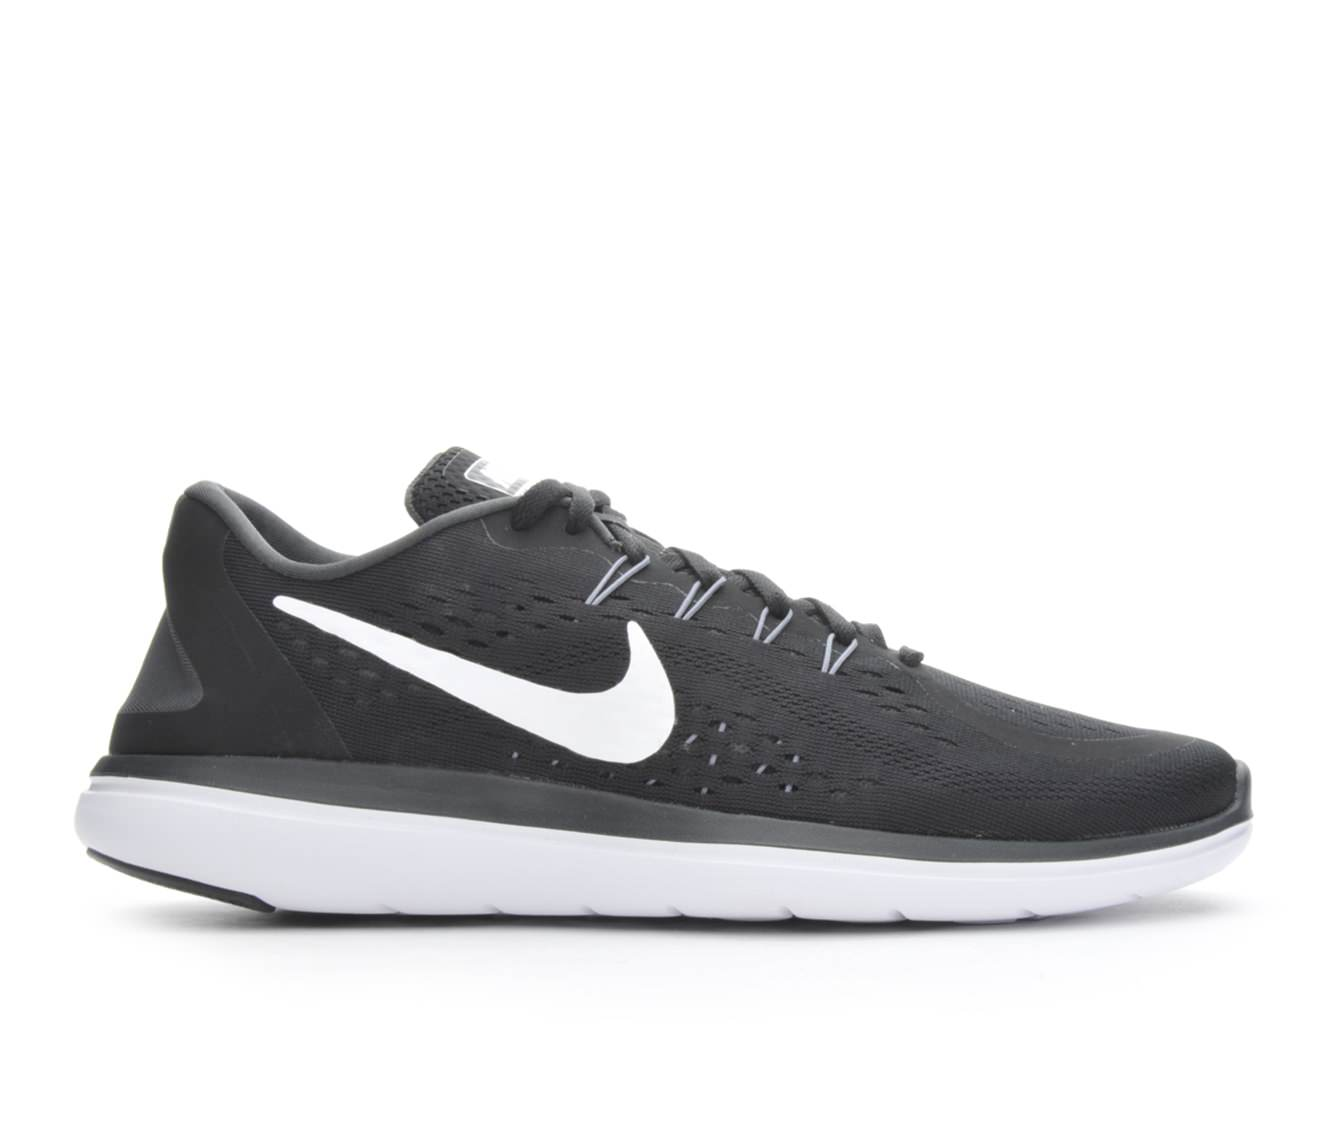 Men's Nike Flex 2017 Run Running Shoes (Black - Size 9.5) 1652026